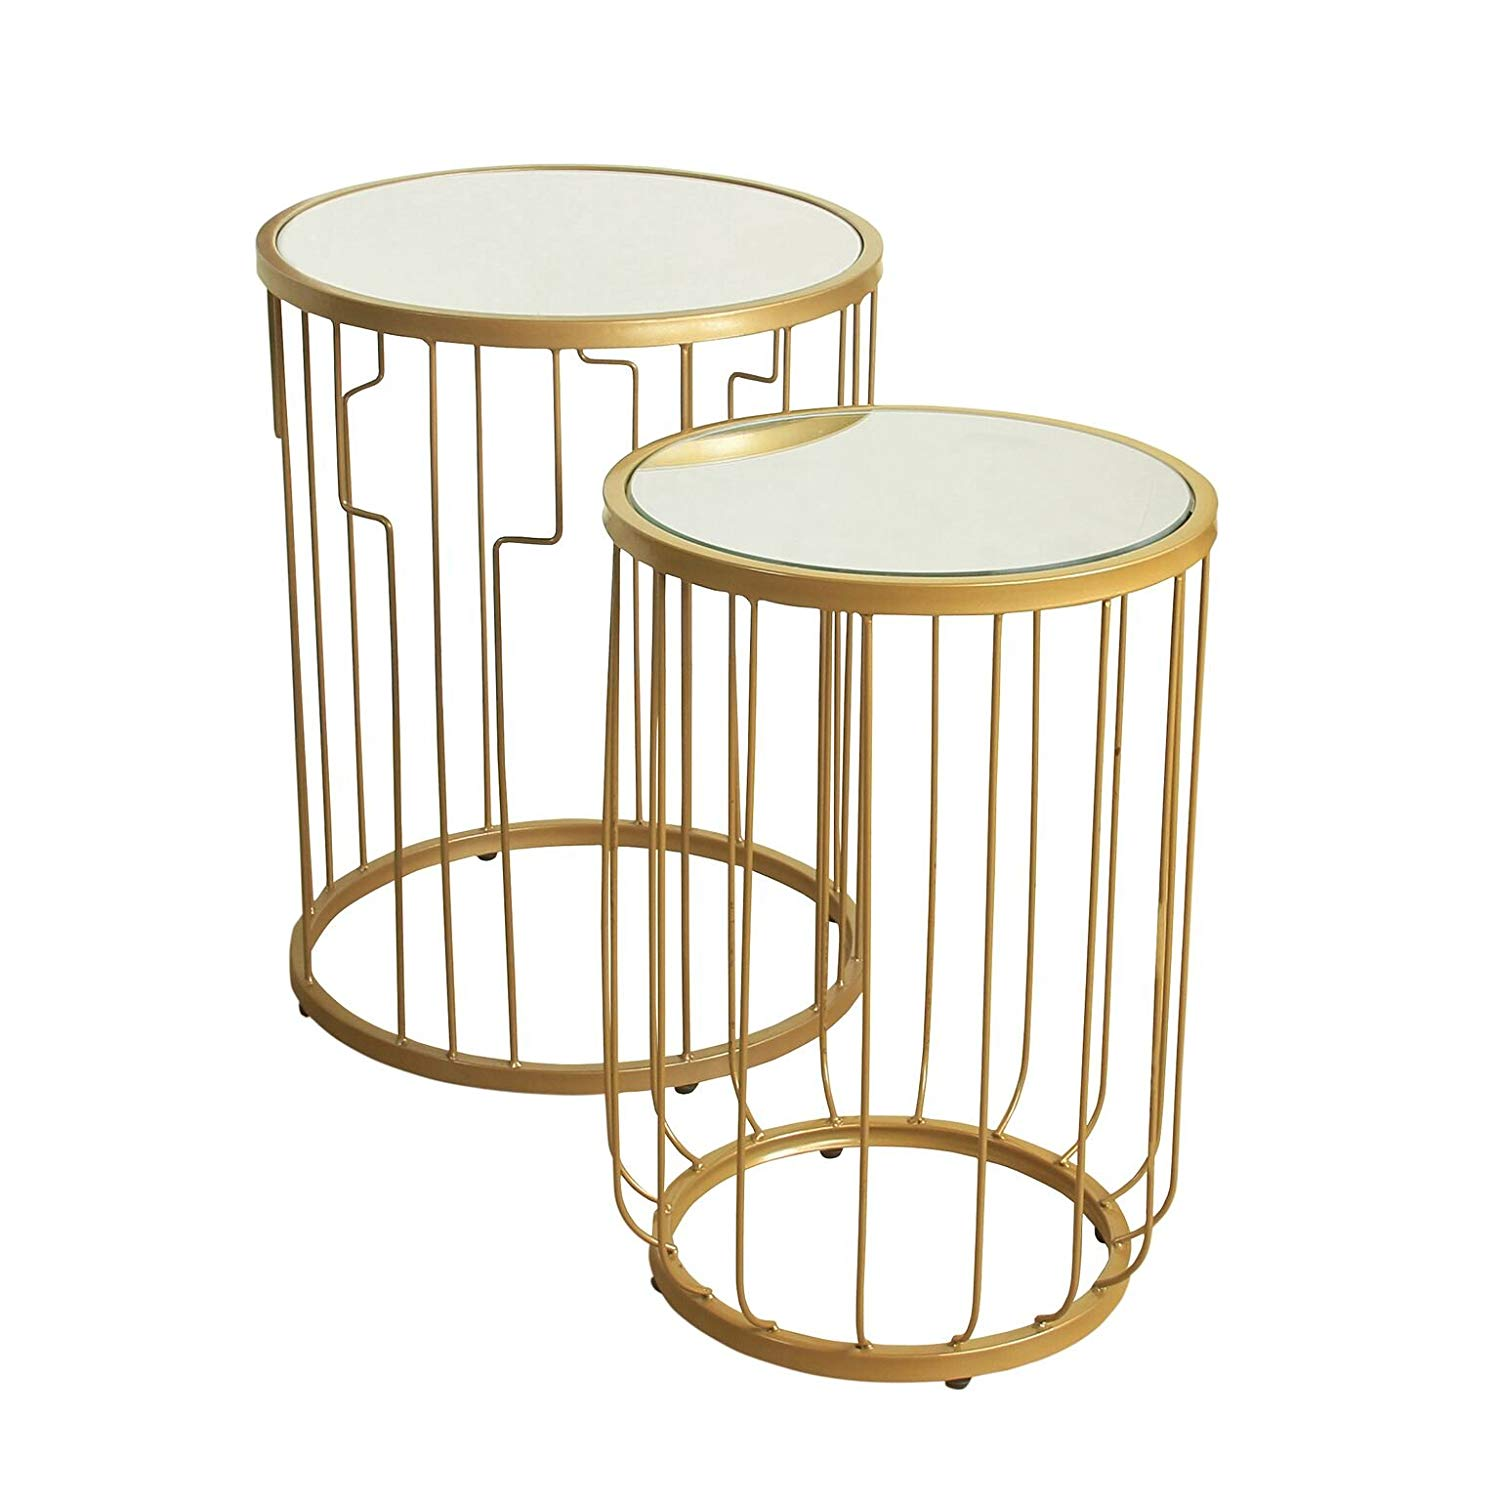 homepop metal accent nesting tables with glass table outdoor top set gold kitchen dining rattan small chest drawers for hallway lobby furniture navy blue chair home decor vinyl